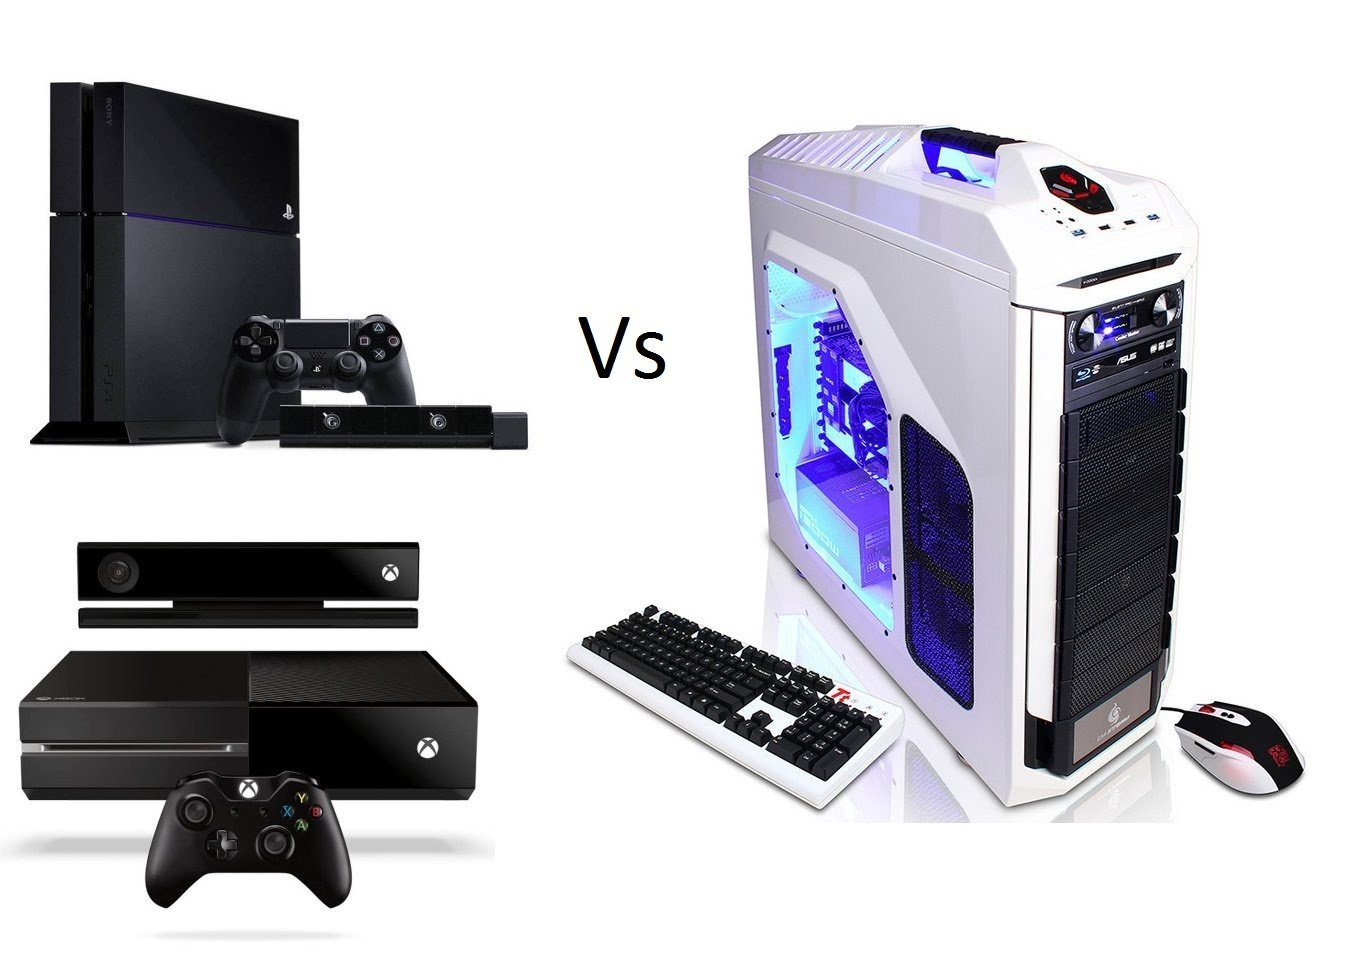 PC gaming vs console gaming: What are the advantages of each